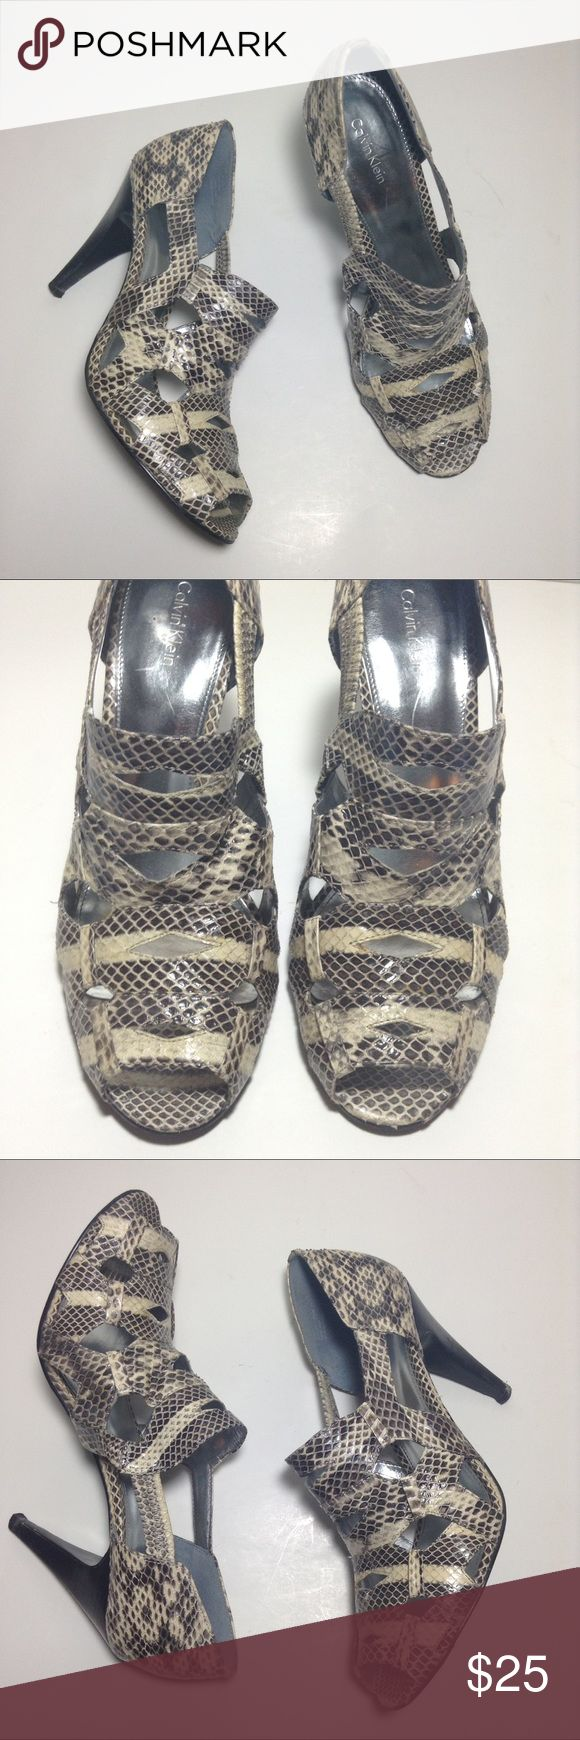 Calvin Klein Caged Strappy Heels Animal Print shoe Calvin Klein caged/cut-out Strappy animal print heels shoes. Size 9.5. Pre-owned in great condition with some wear mainly on soles. If you have questions, please leave a comment below. Calvin Klein Shoes Heels